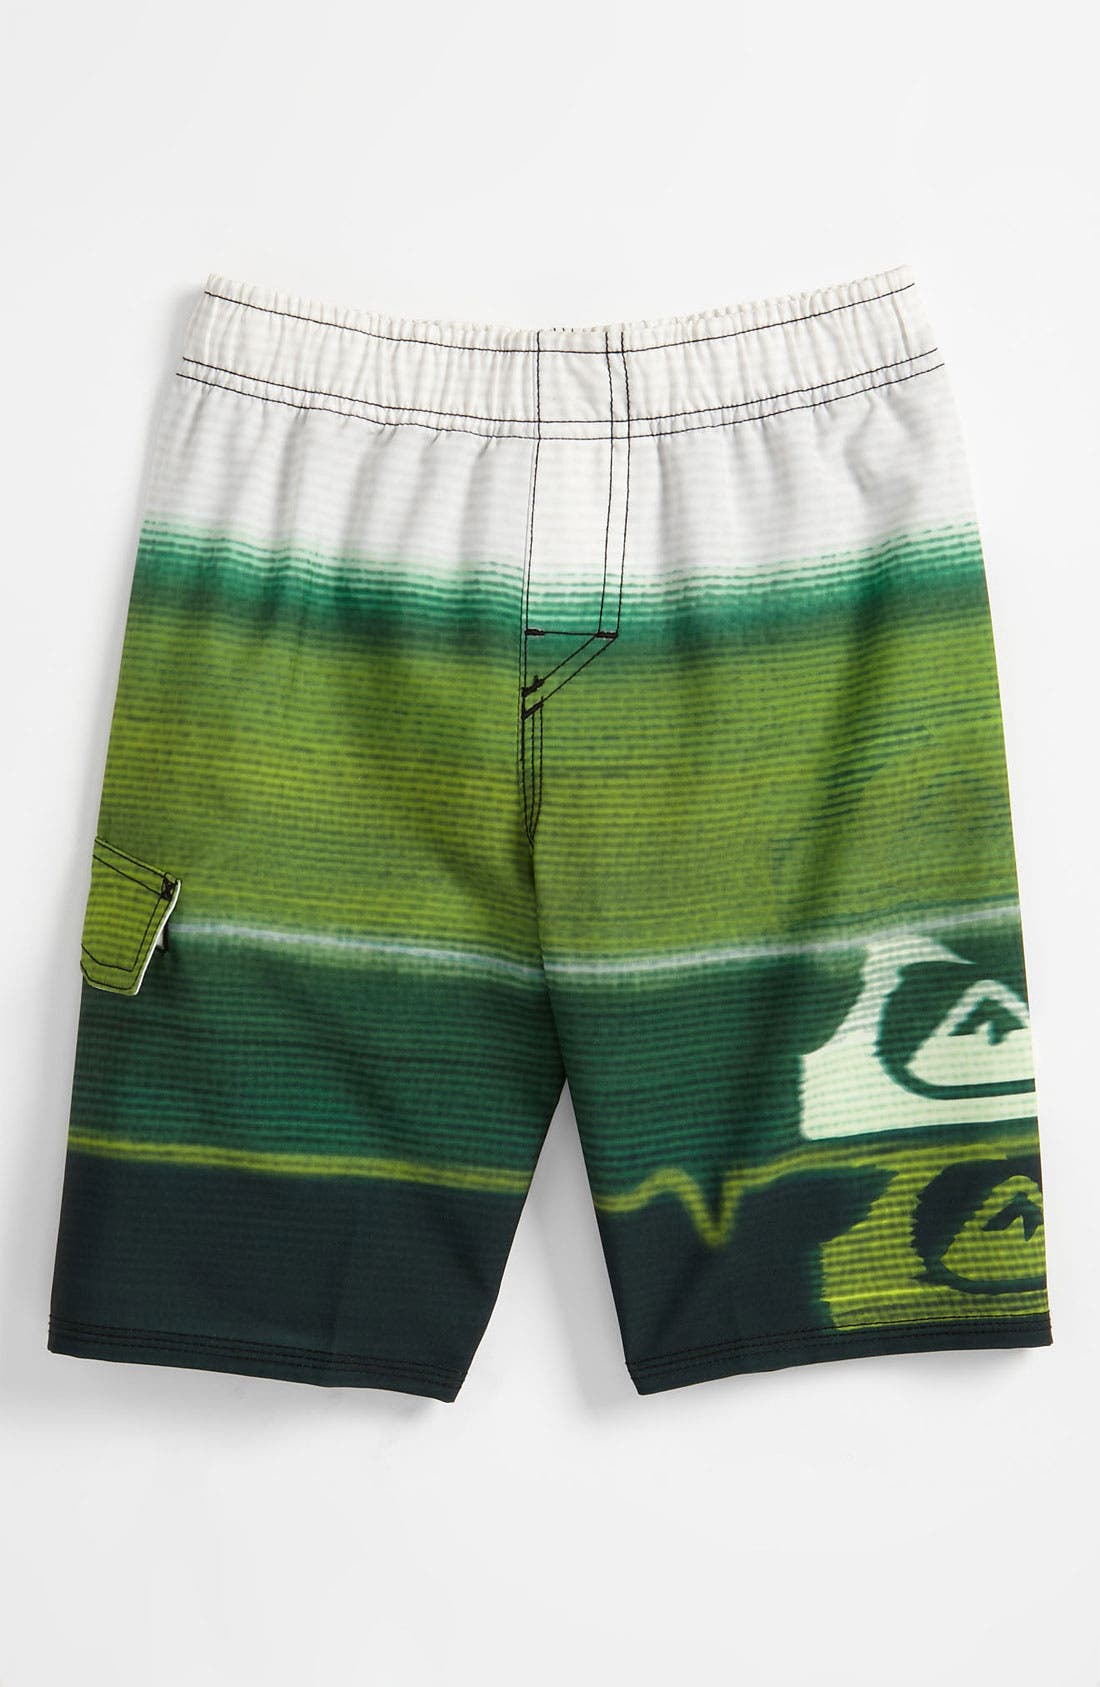 Alternate Image 1 Selected - Quiksilver 'Bravo' Board Shorts (Big Boys)